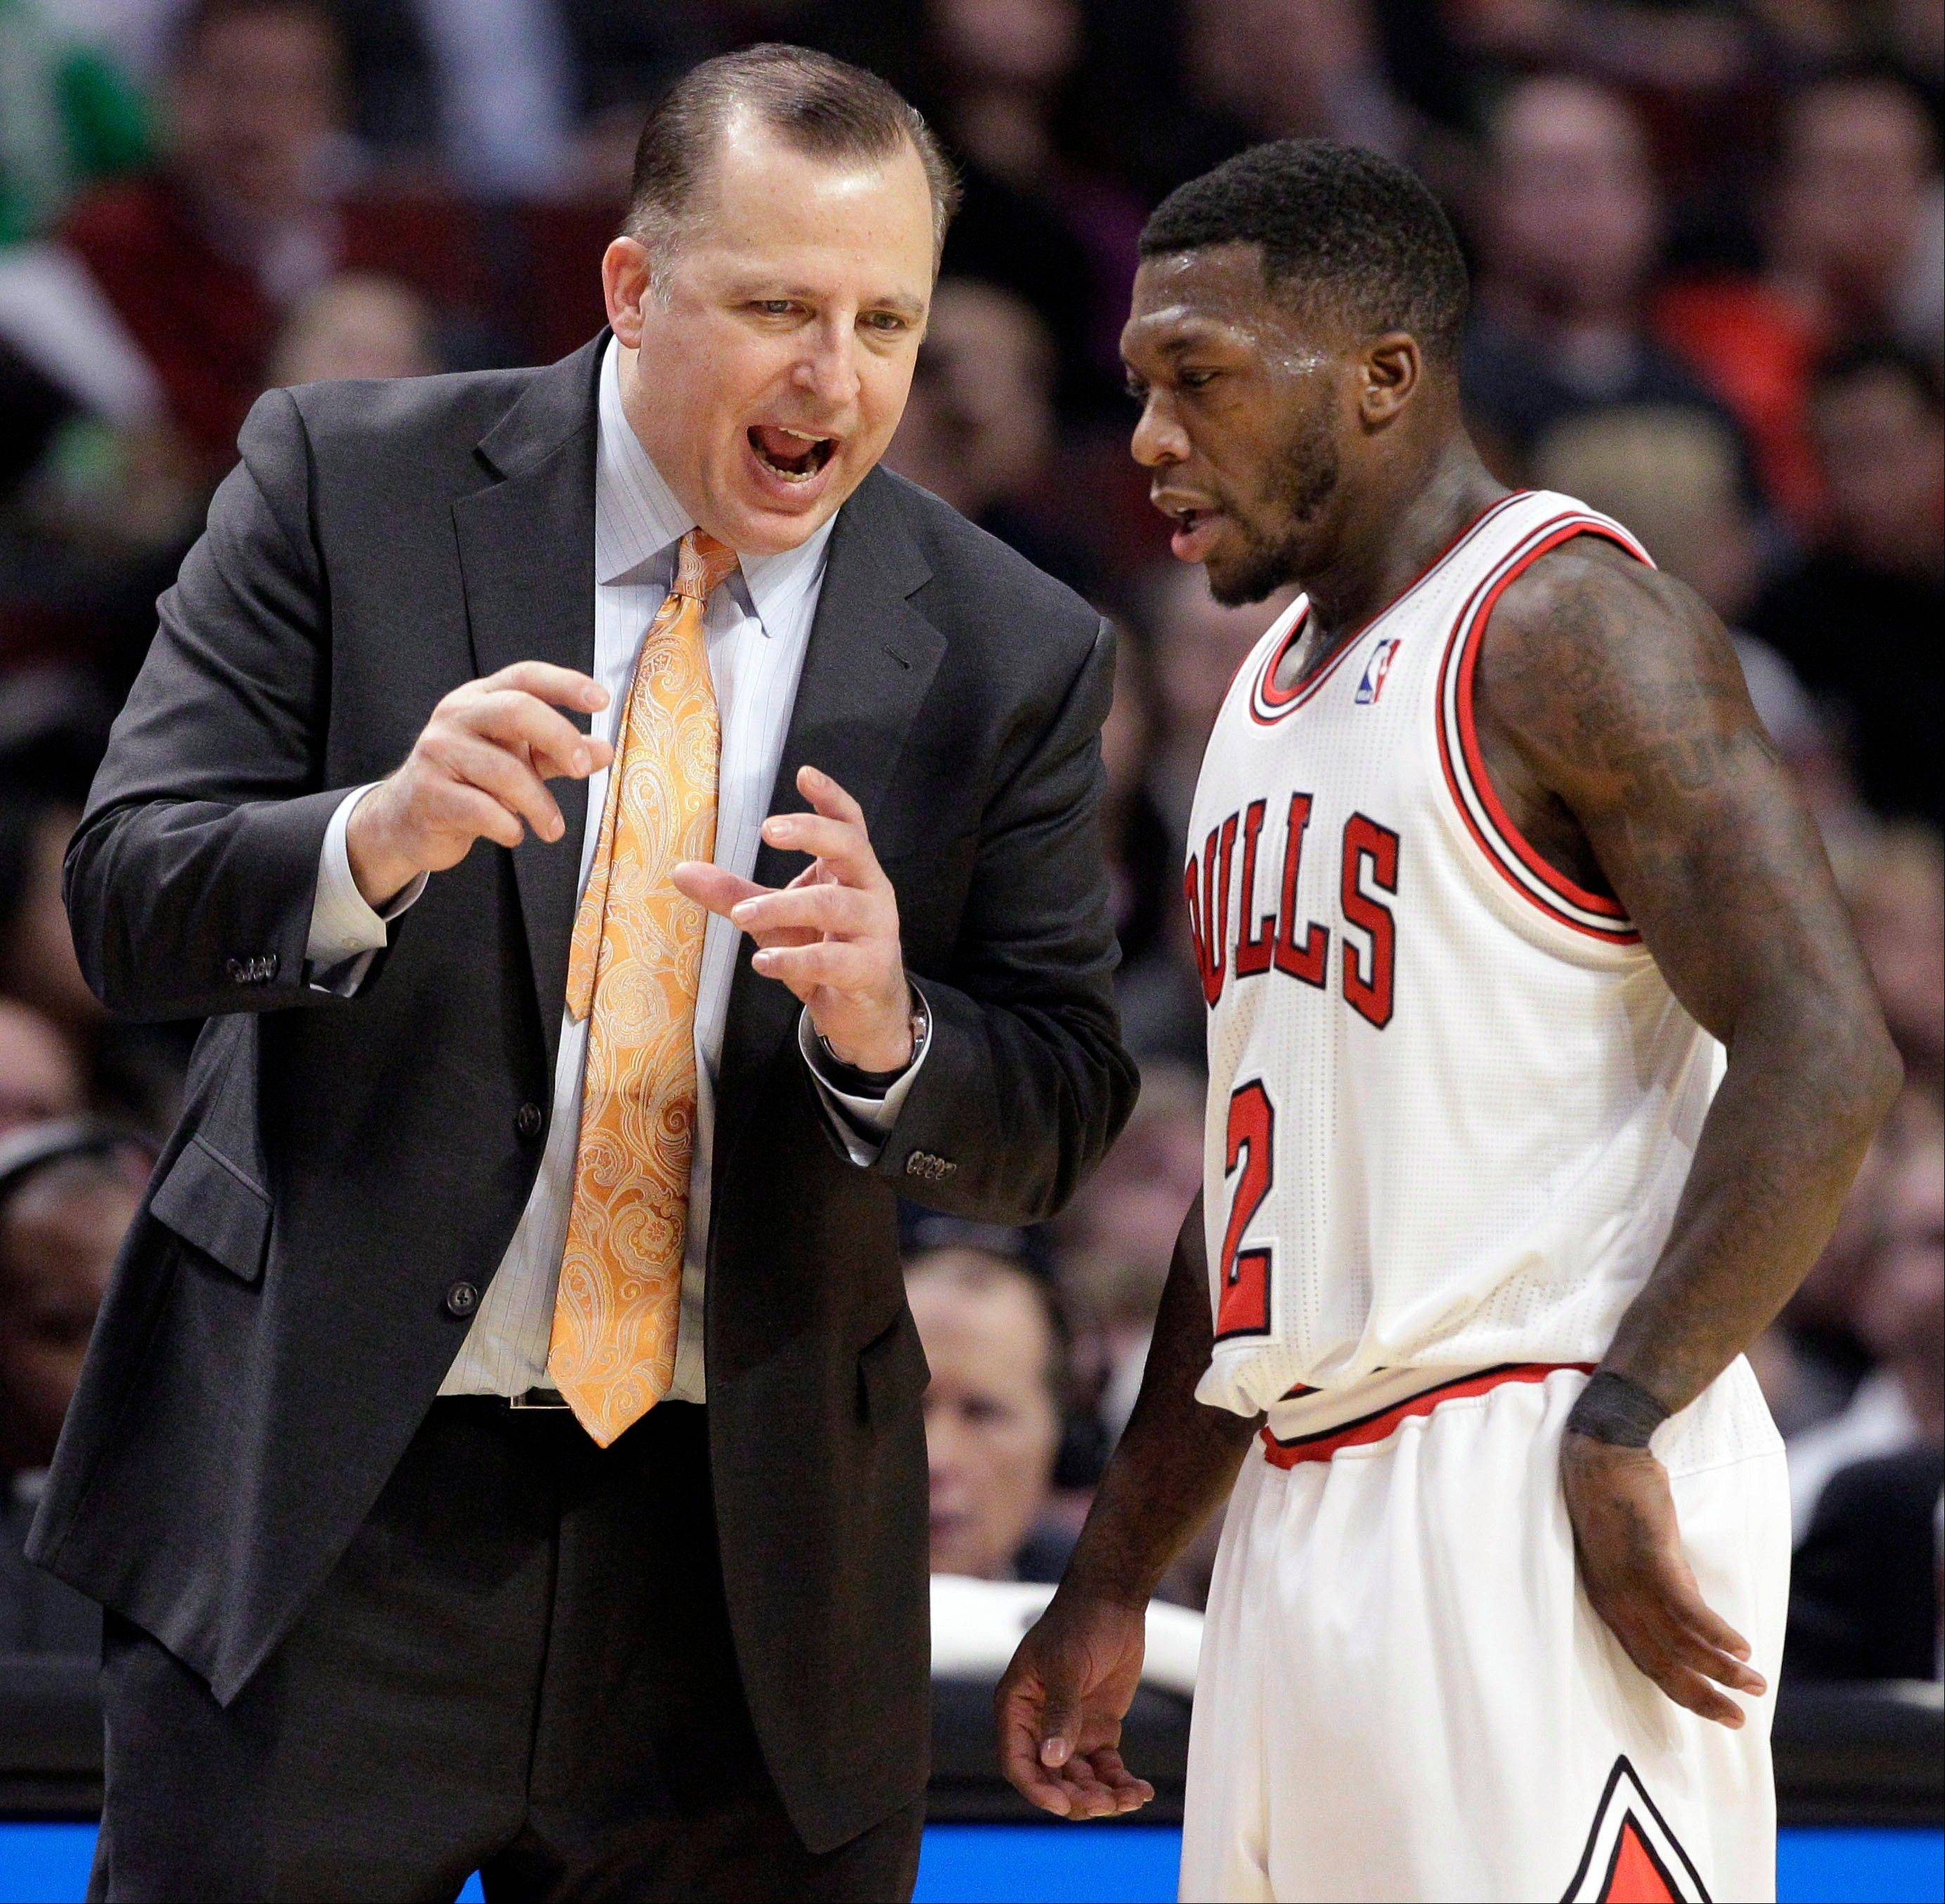 Chicago Bulls coach Tom Thibodeau talks to Nate Robinson during the second half of an NBA basketball game against the Dallas Mavericks in Chicago on Wednesday, Nov. 28, 2012. The Bulls won 101-78.